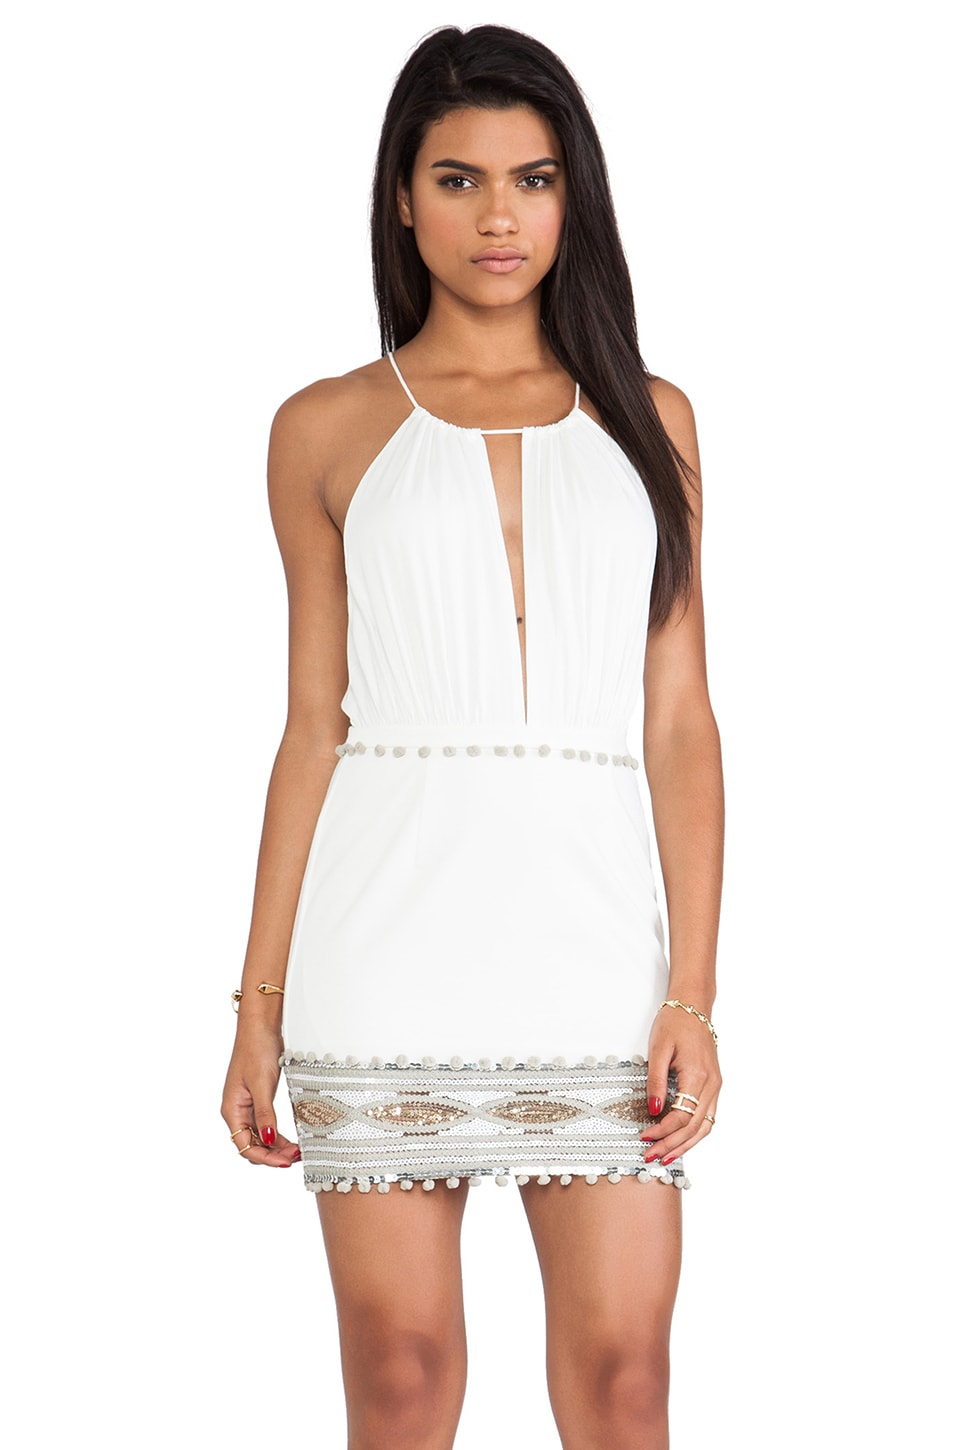 bless'ed are the meek Anaconda Dress in Ivory